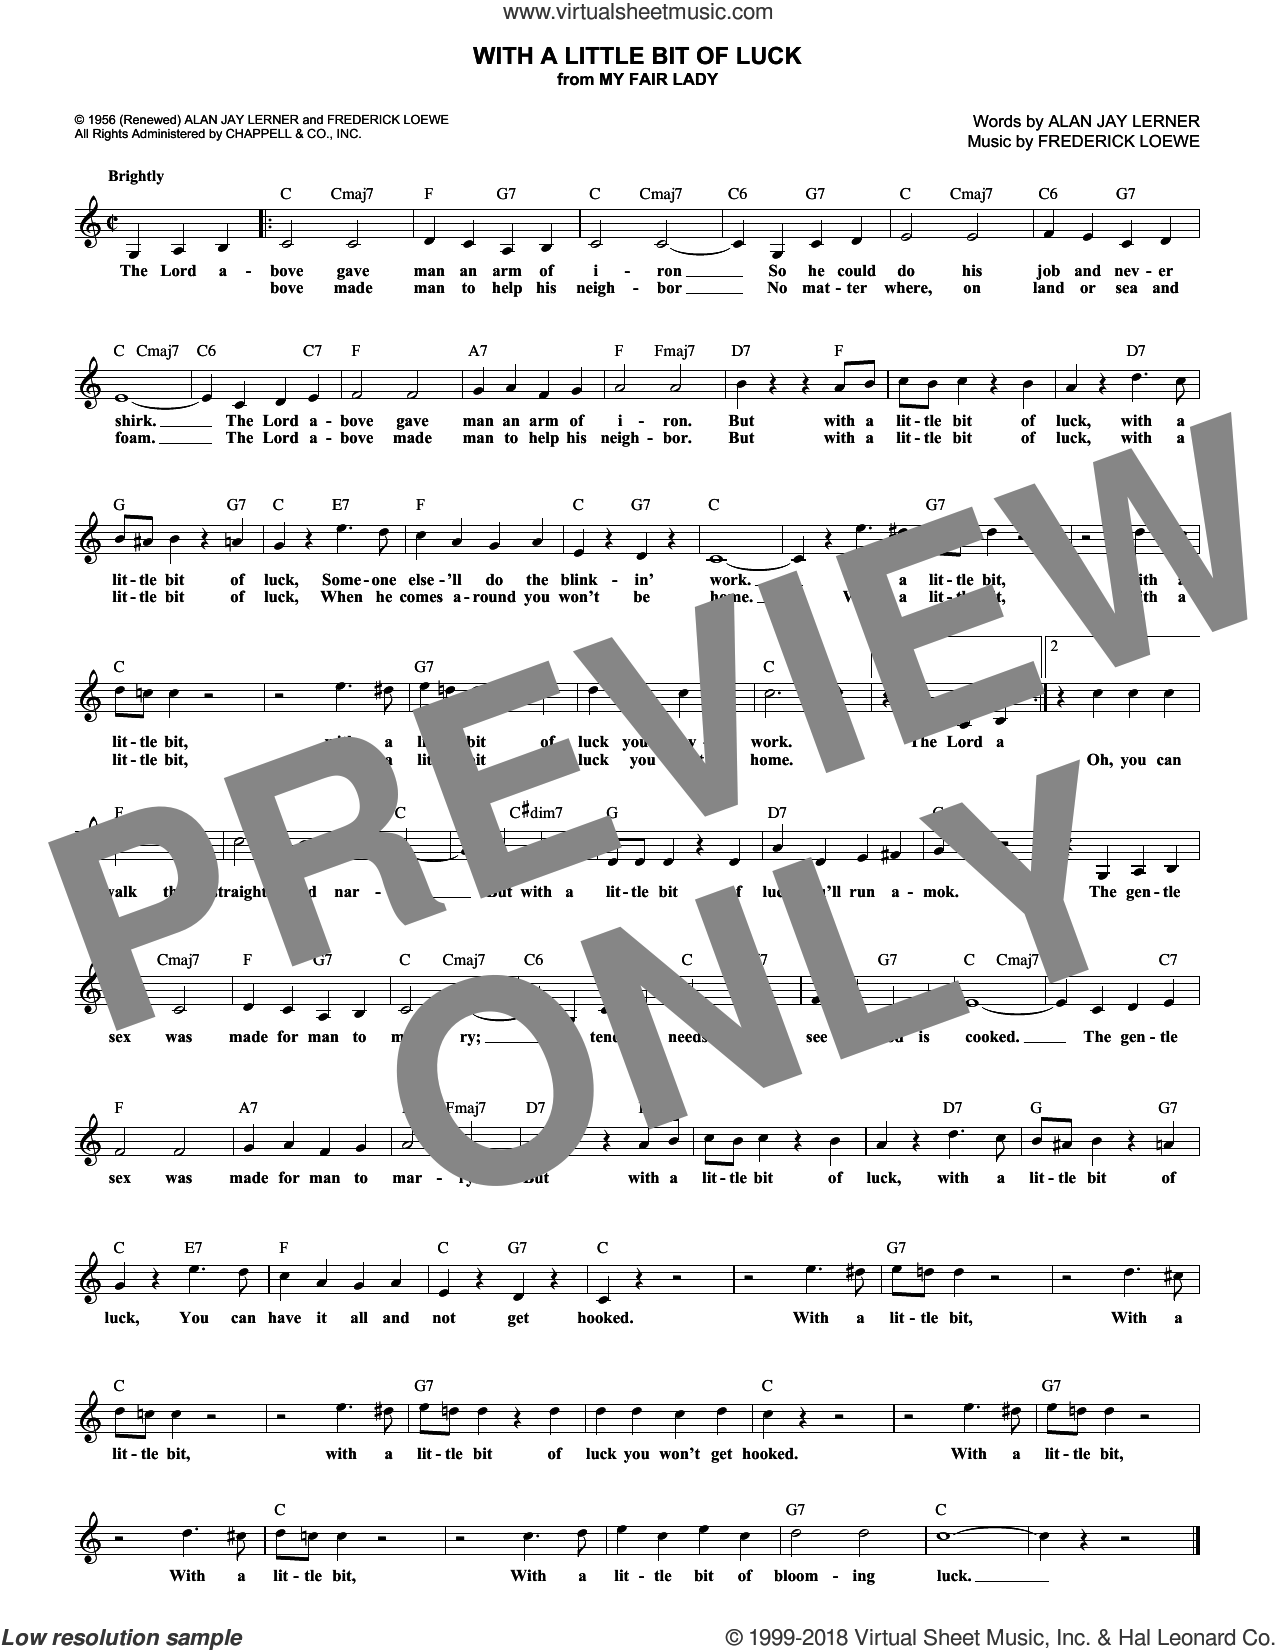 With A Little Bit Of Luck sheet music for voice and other instruments (fake book) by Alan Jay Lerner and Frederick Loewe, intermediate skill level